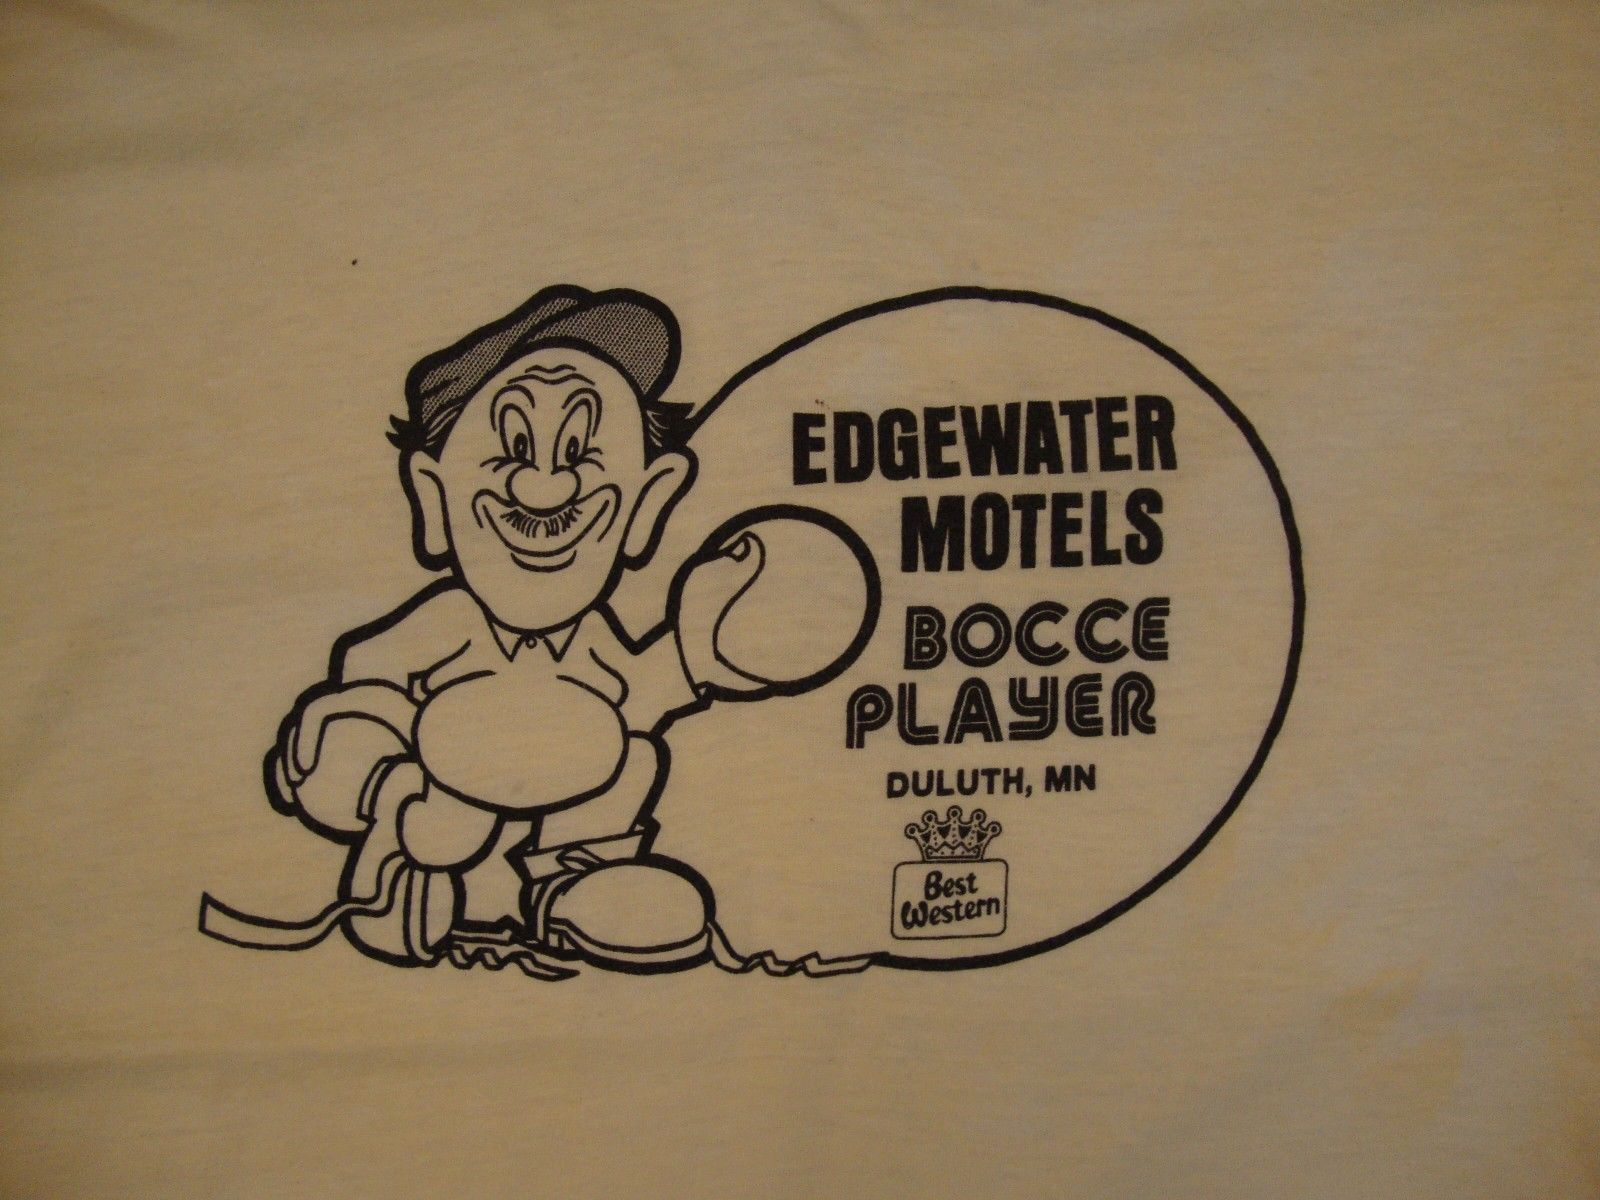 Primary image for Vintage Edgewater Motels Bocce Ball Duluth Minnesota Sports Outdoors T Shirt M